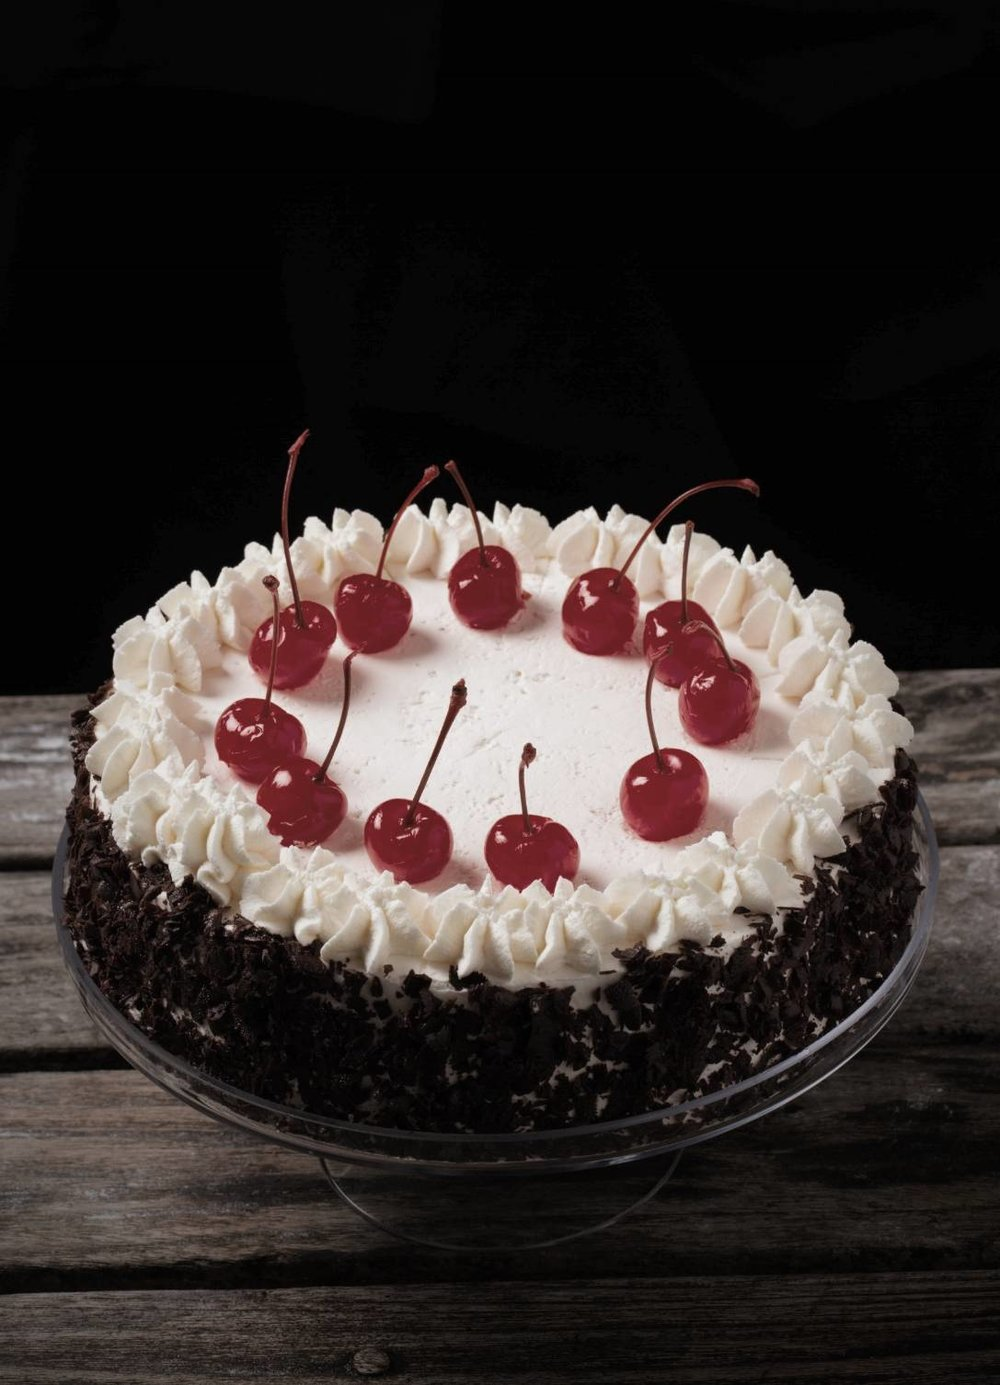 BLACK FOREST - Old but Fashioned